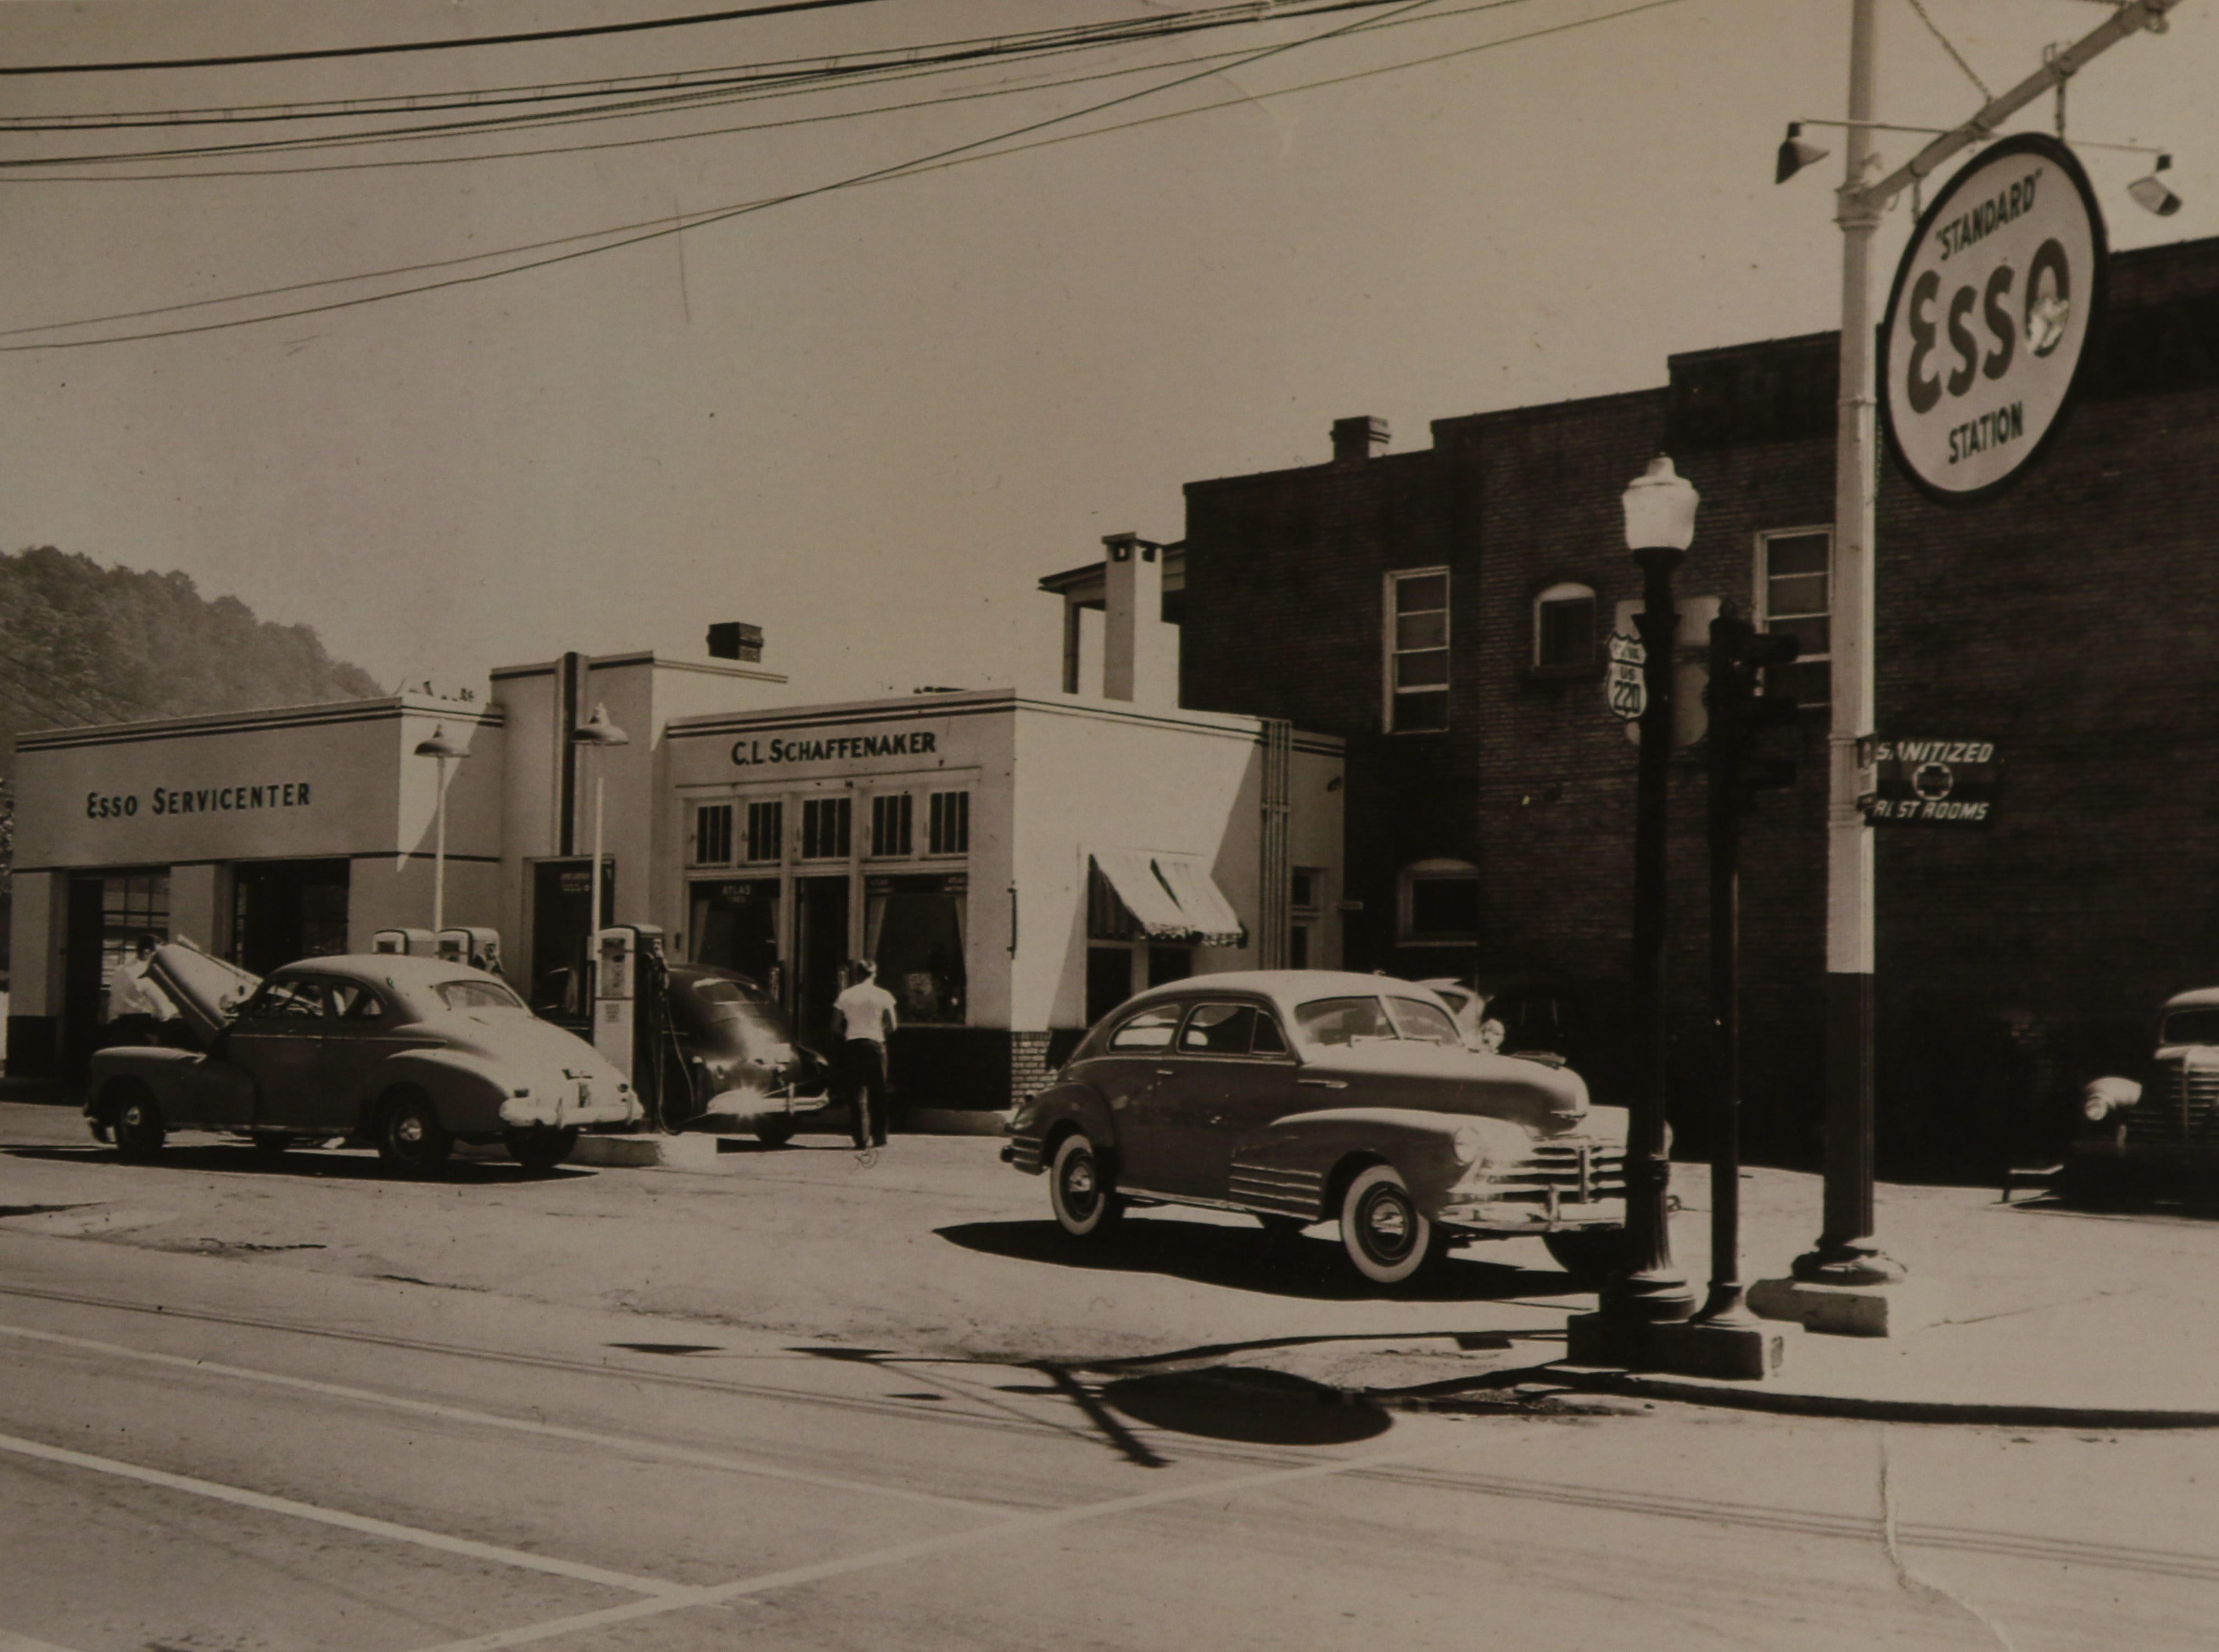 Here is a photo taken in the 1950s of the establishment that real estate developer Terry Stephens is trying to open. It is a new downtown business in Keyser that would include a coffee shop, a brew pub restaurant, and a place to rent bicycles and kayaks since there is close access to the Potomac River.